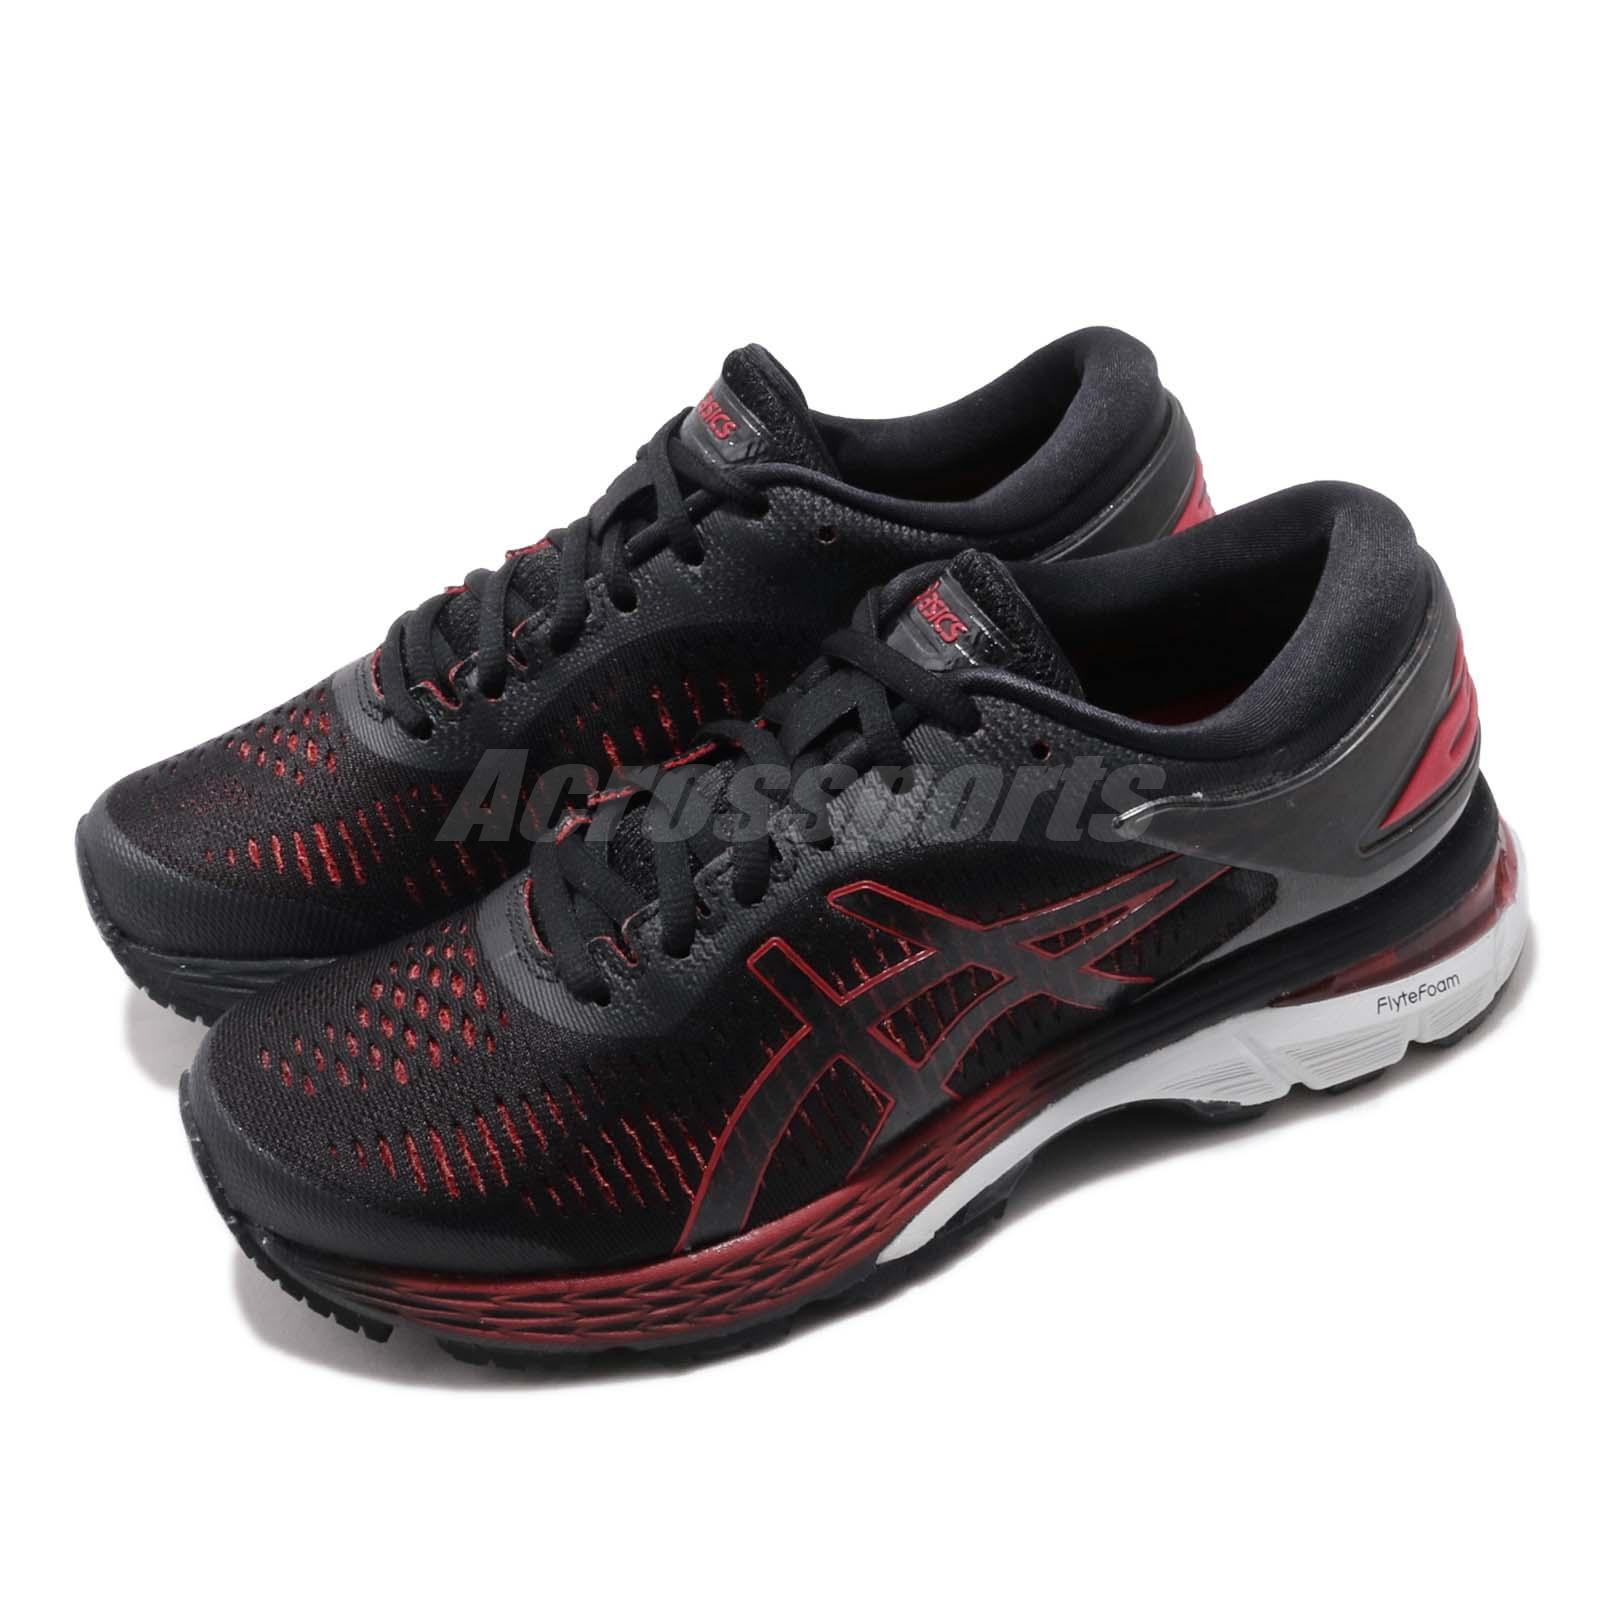 Details about Asics Gel Kayano 25 D Wide Black Classic Red Women Running  Shoes 1012A032-004 8633297c09b1